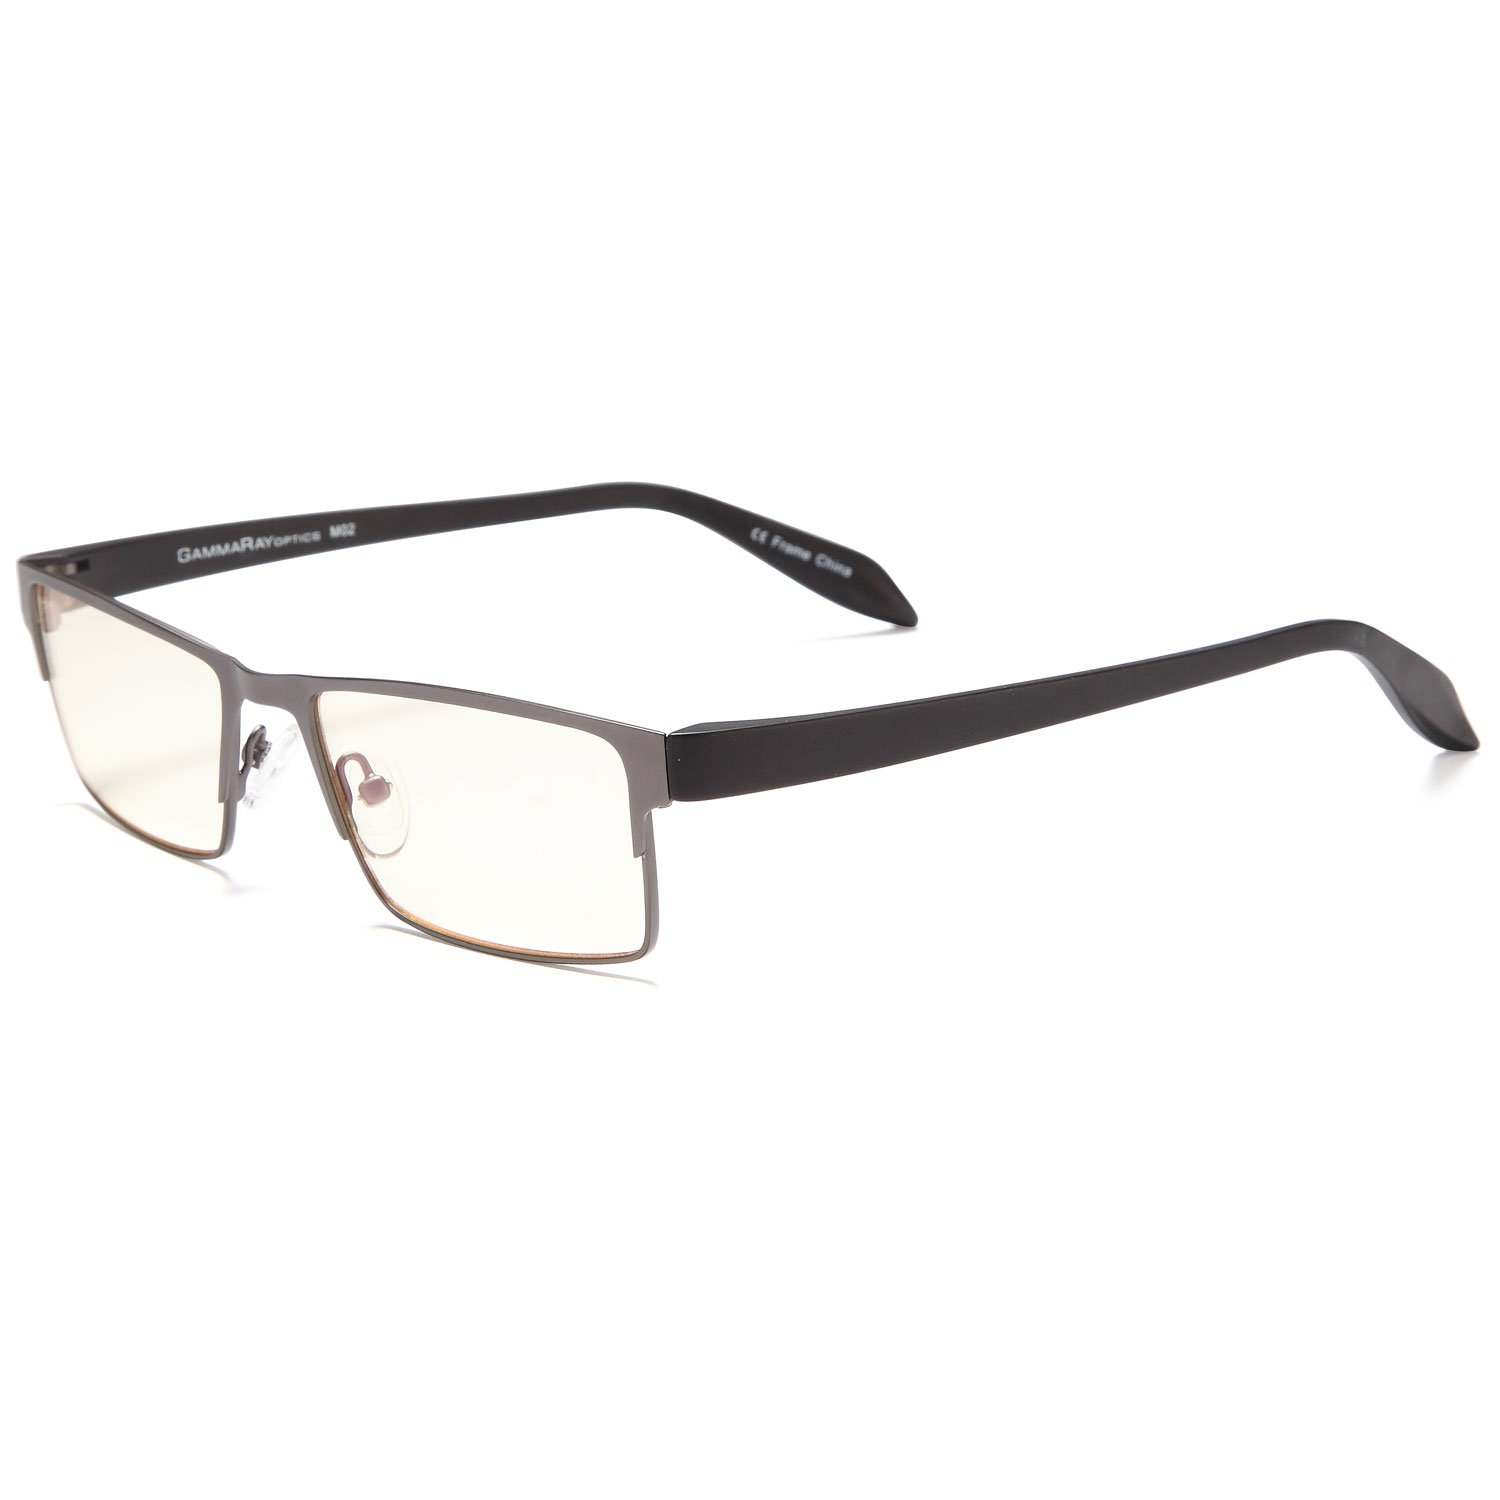 GAMMA RAY Eye Strain Computer Glasses Anti Harmful Blue Light Glare UV400 0.00x by Gamma Ray Optics